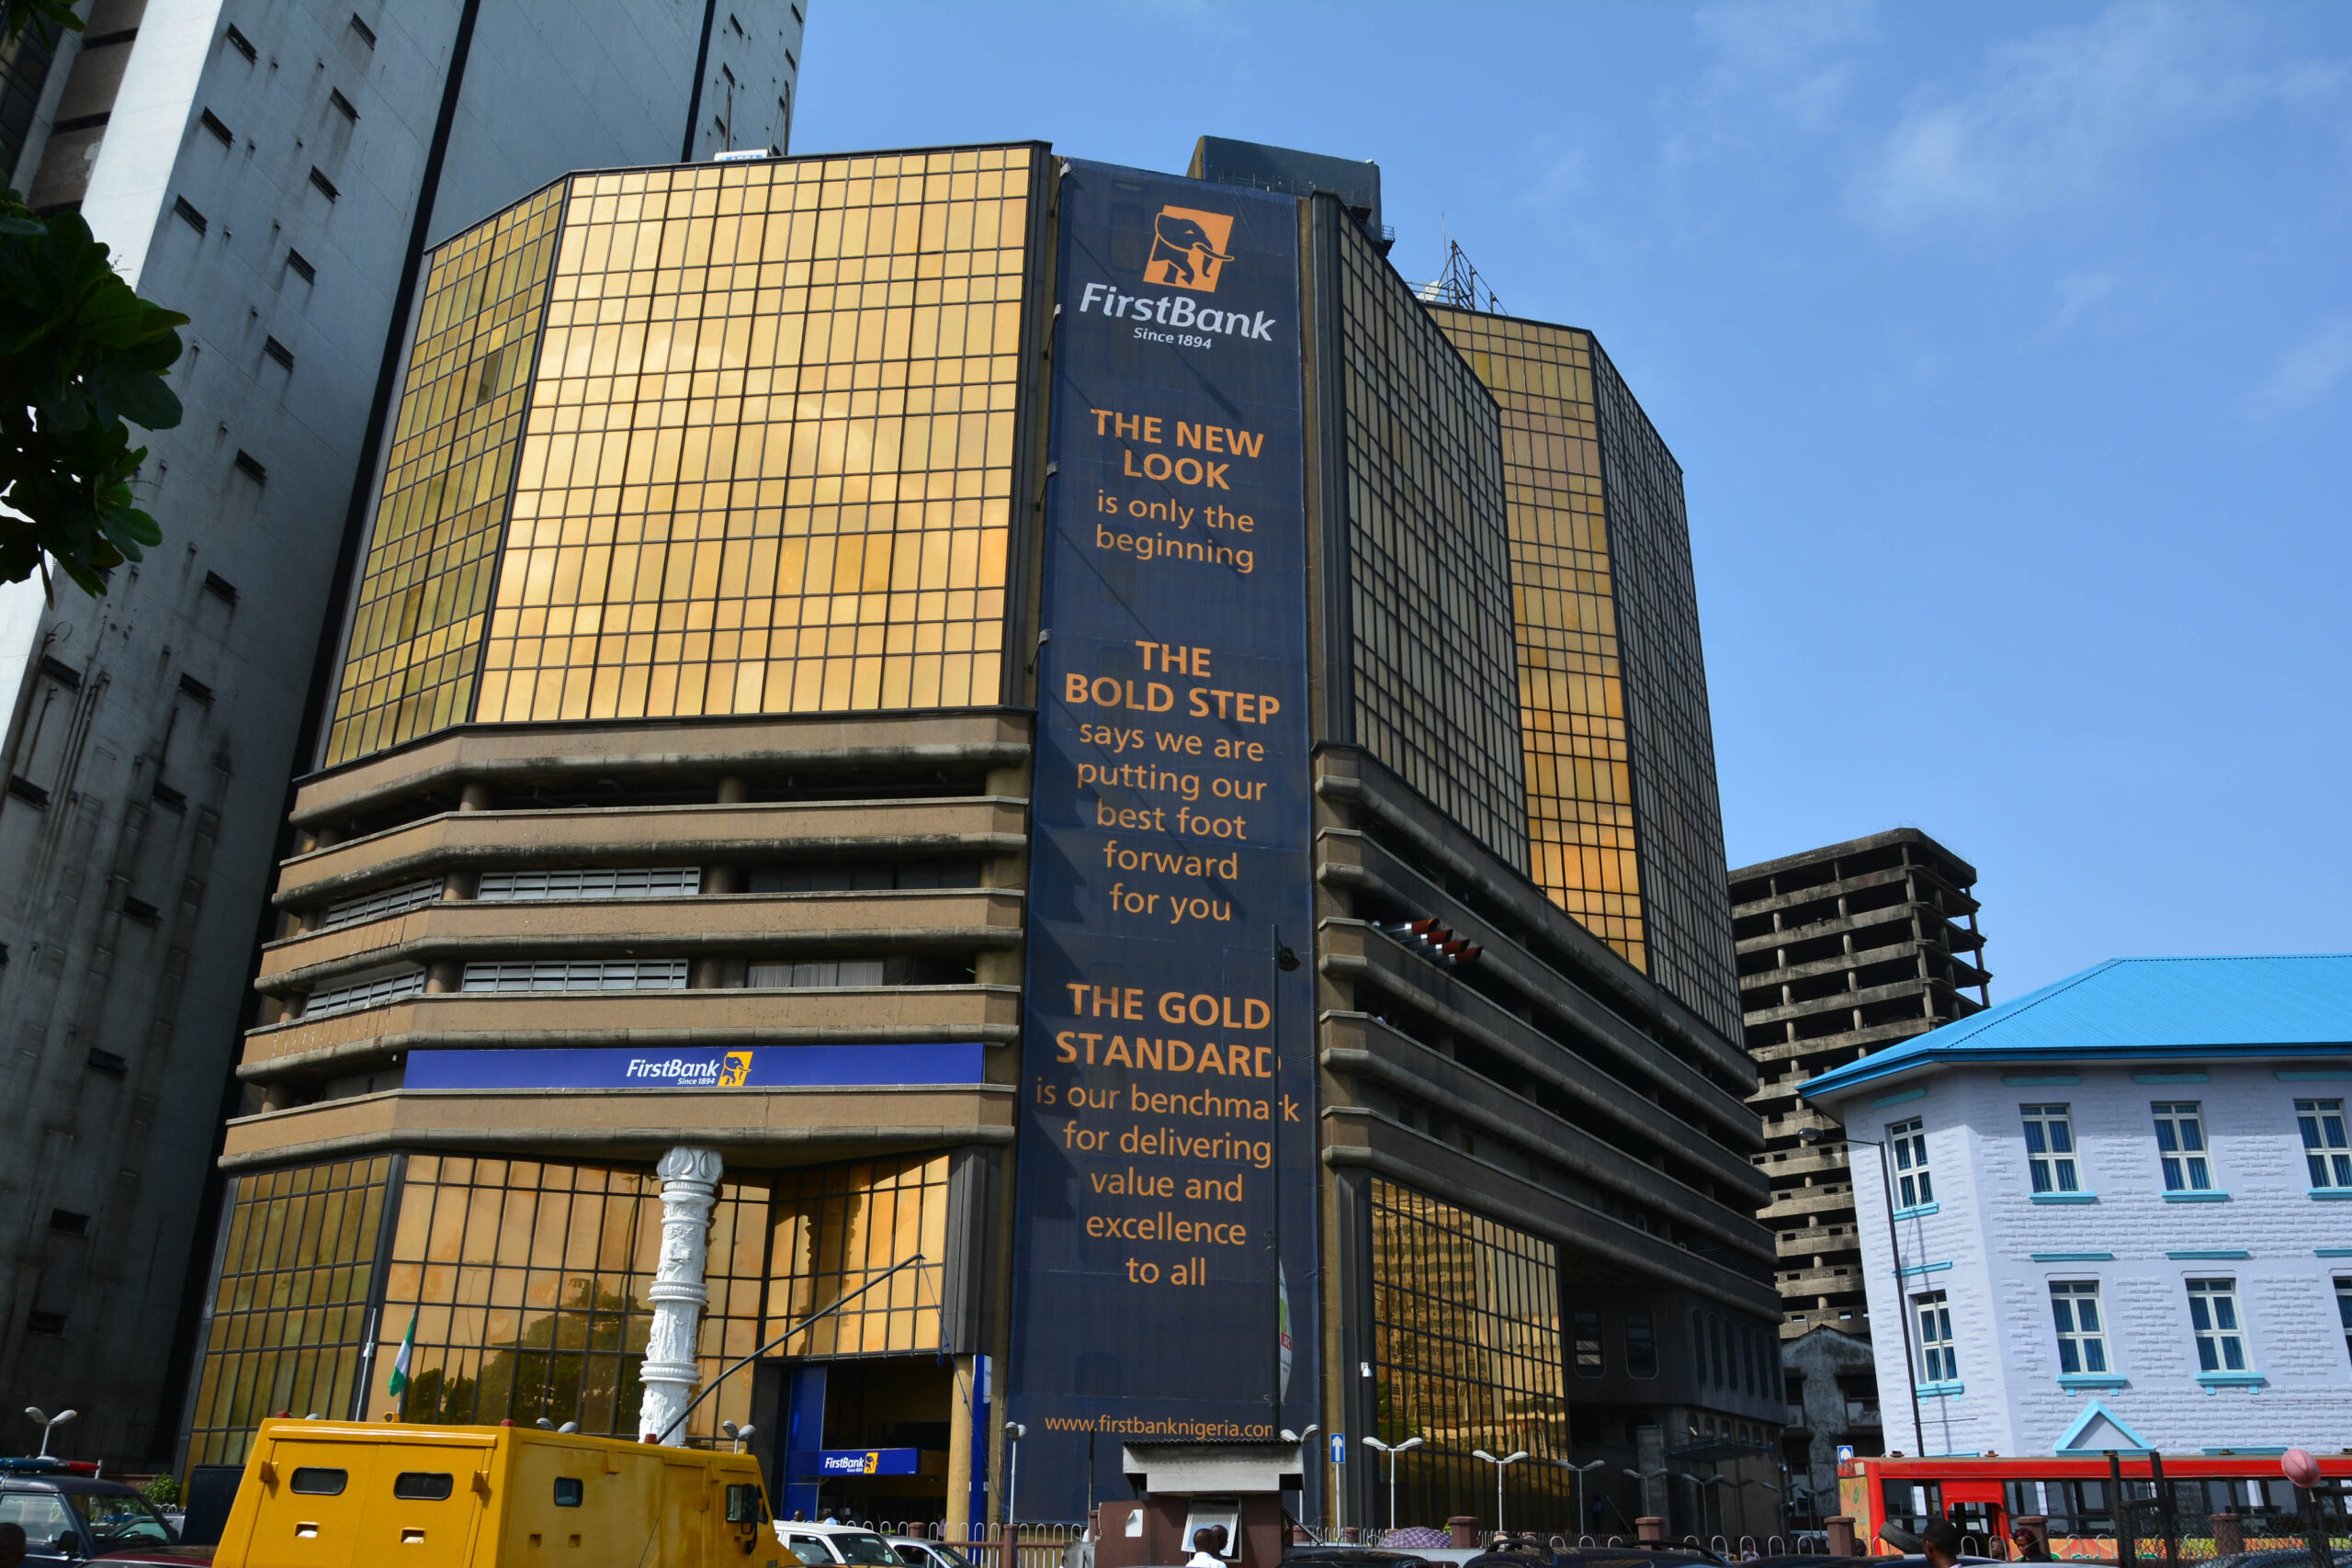 FirstBank announces changes to its board. Assures depositors and investors